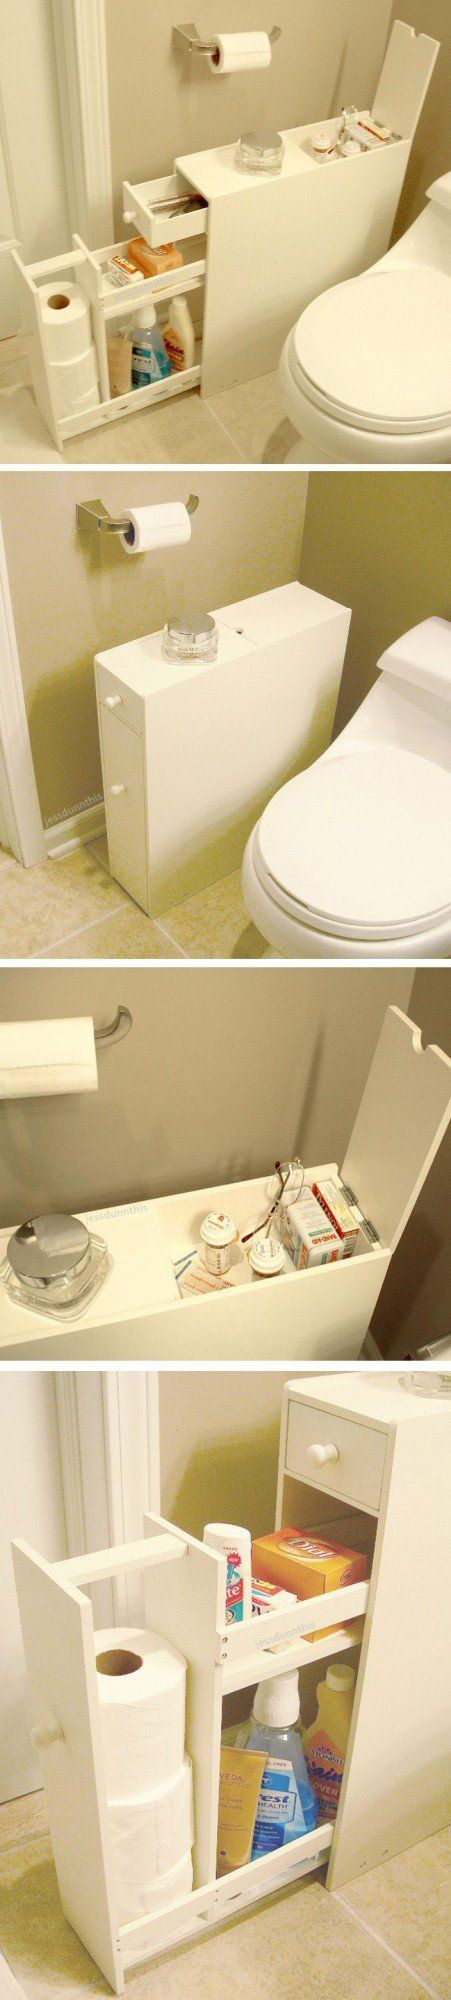 Diy bathroom ideas for small spaces - Top 25 The Best Diy Small Bathroom Storage Ideas That Will Fascinate You